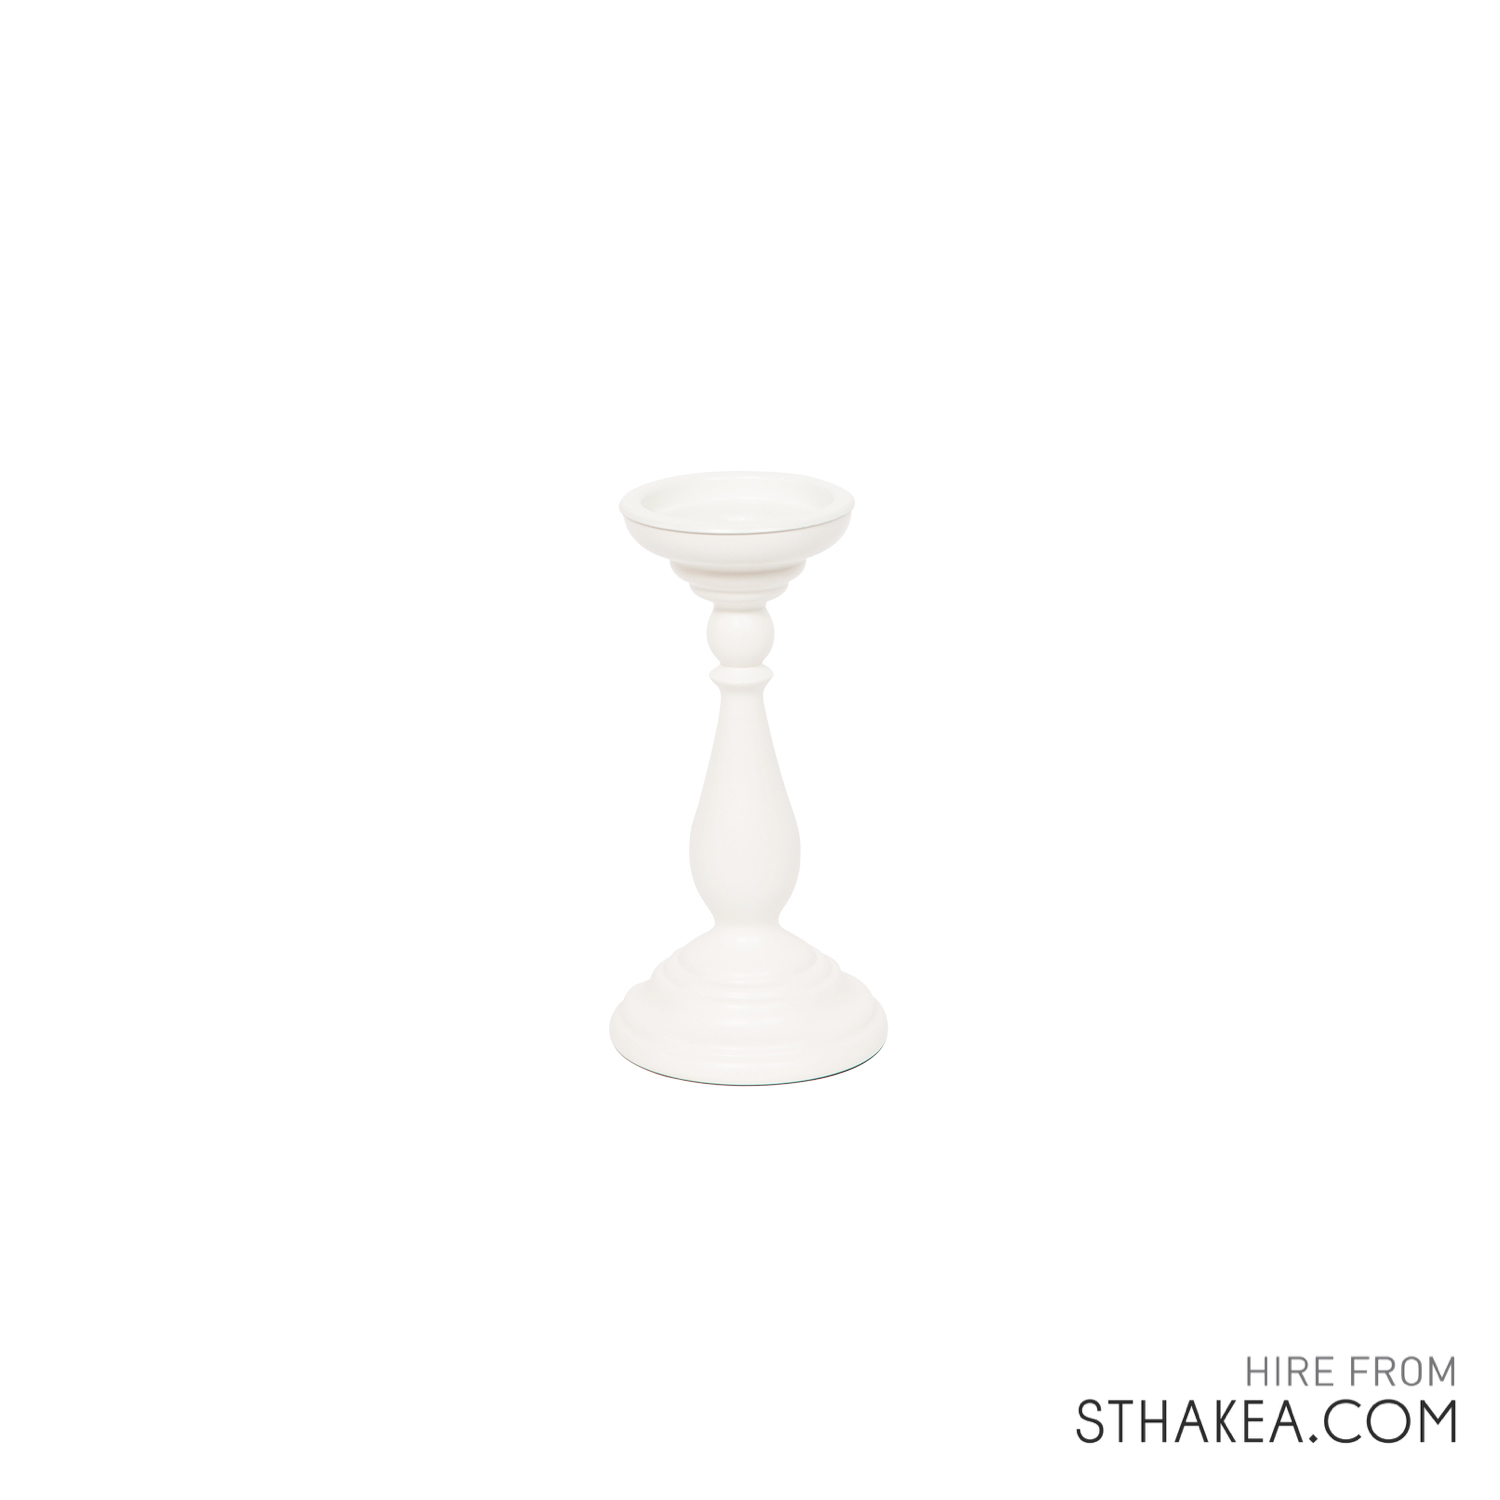 St Hakea Event Hire Melbourne Small White Wooden Candlestick.jpg